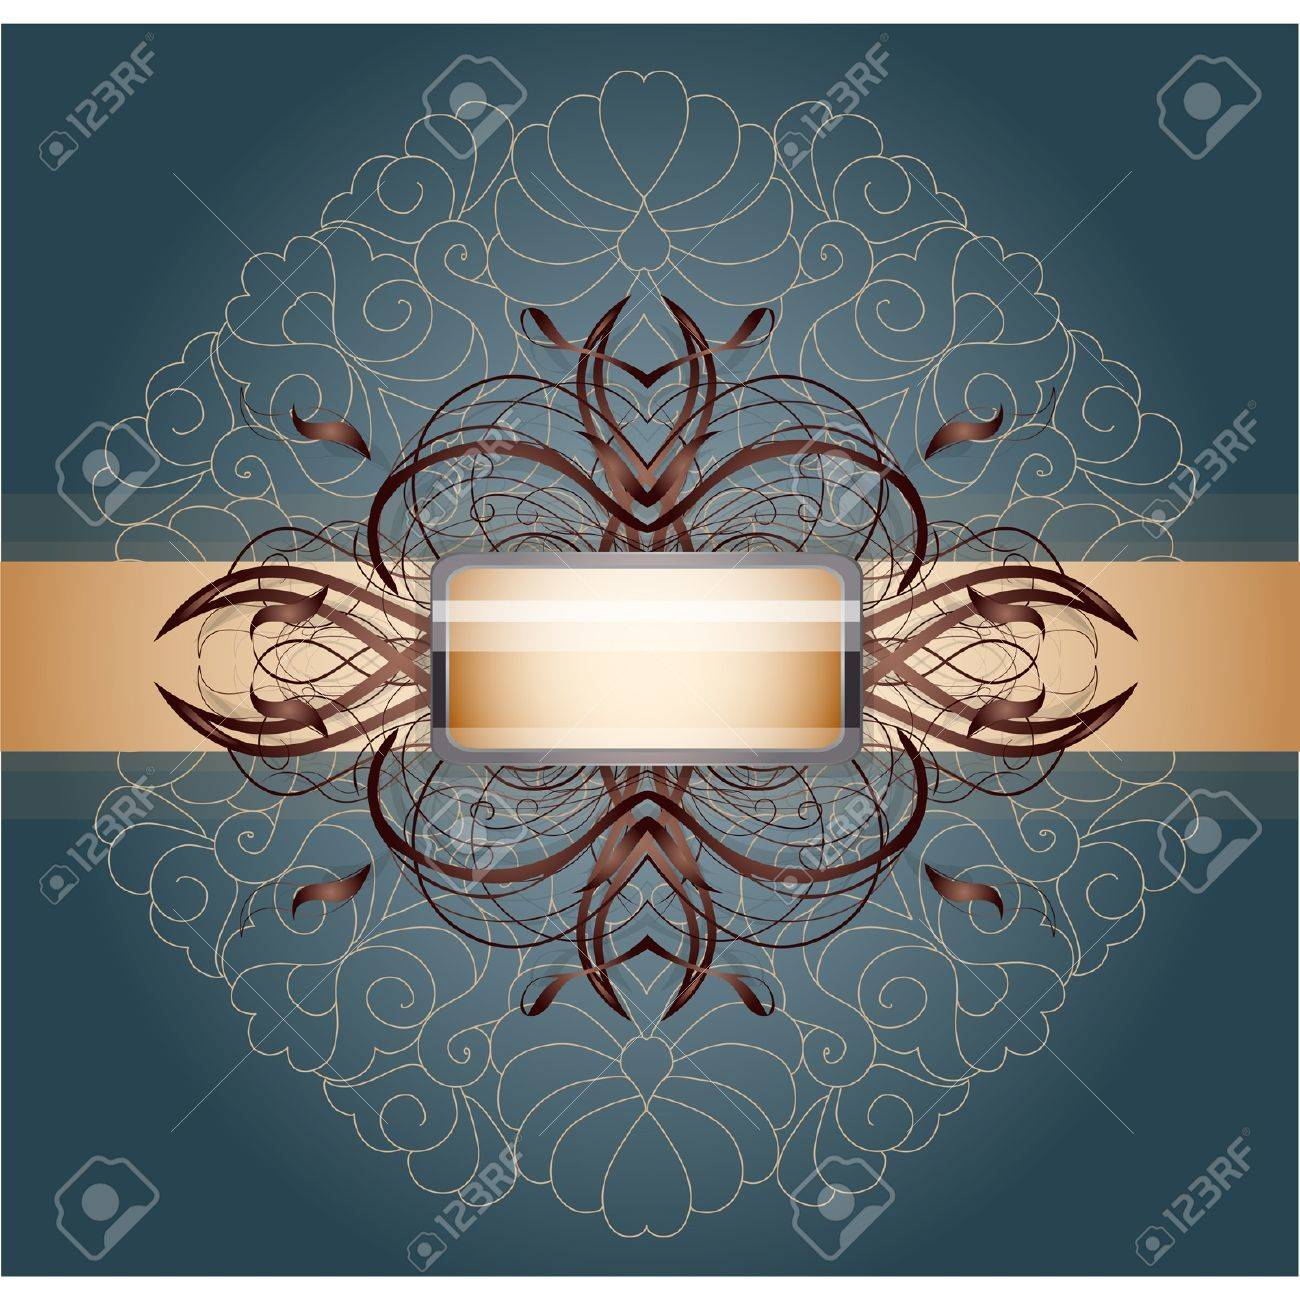 Retro background with ornament. Illustration 10 version Stock Vector - 17695659